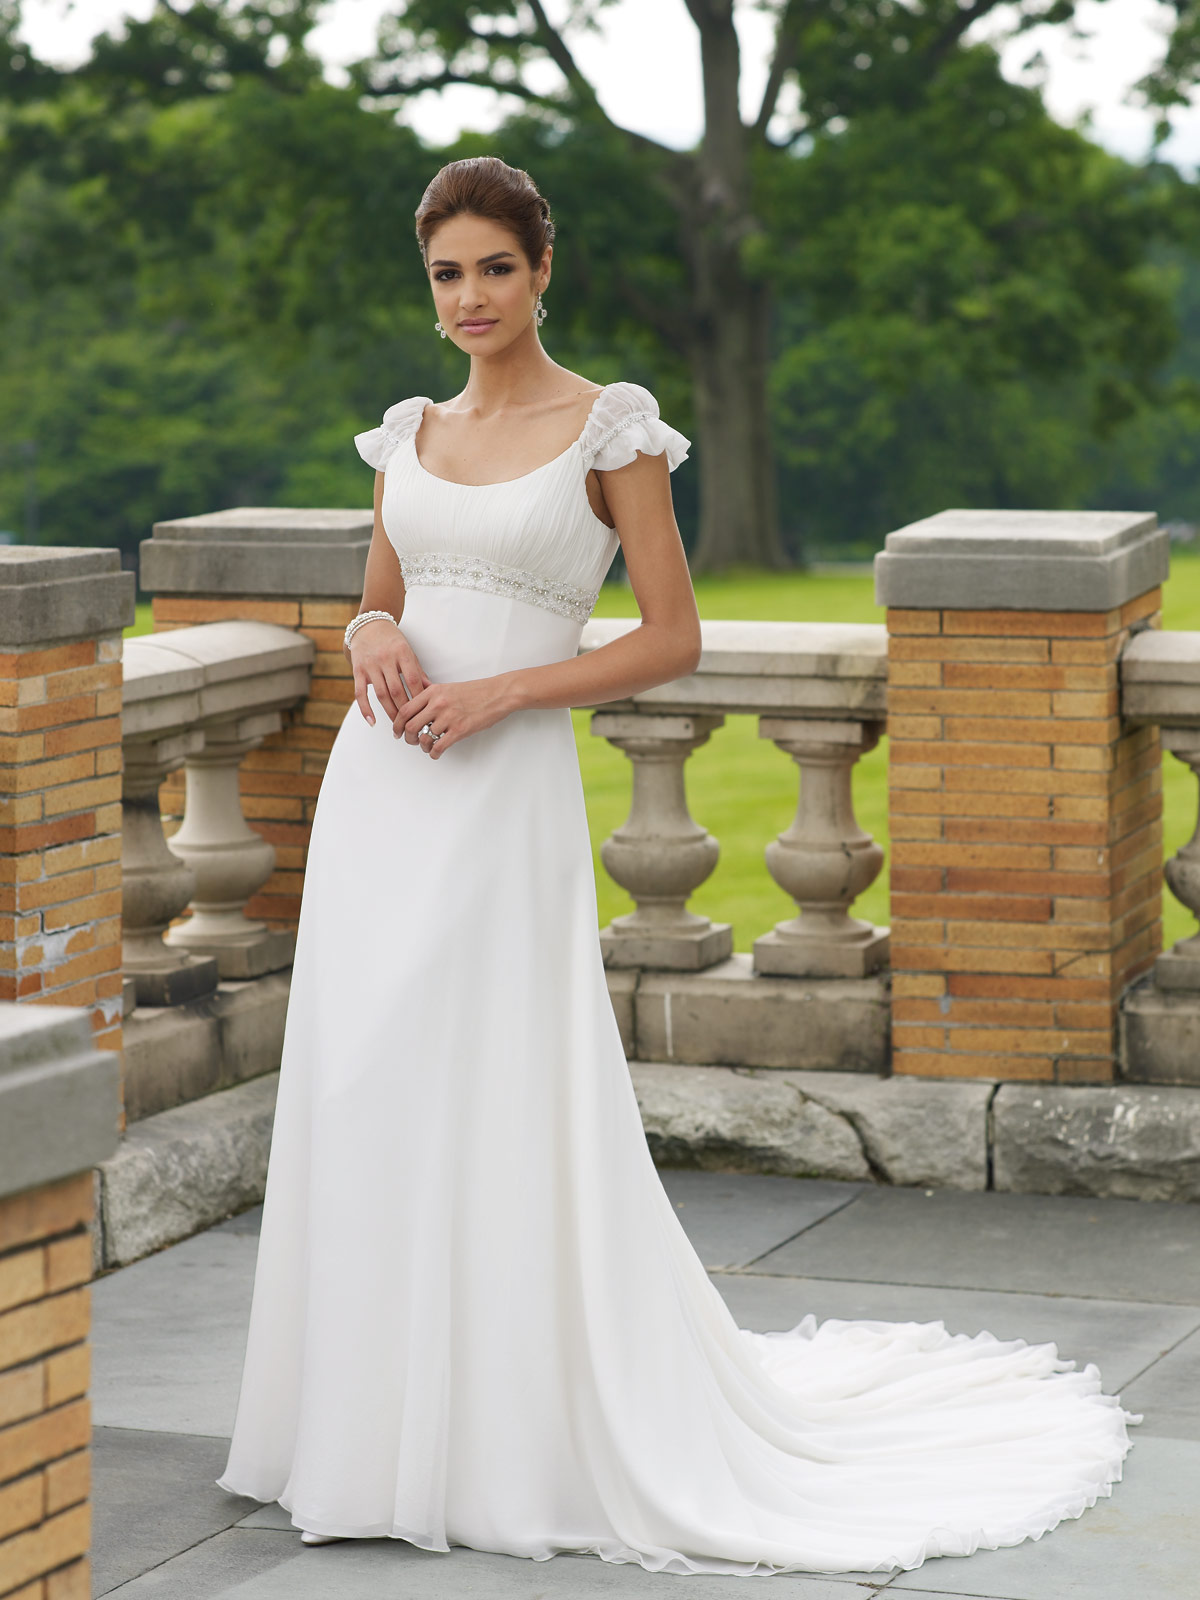 Simple About Wedding The Dress Designers Beautiful Gowns Bridal